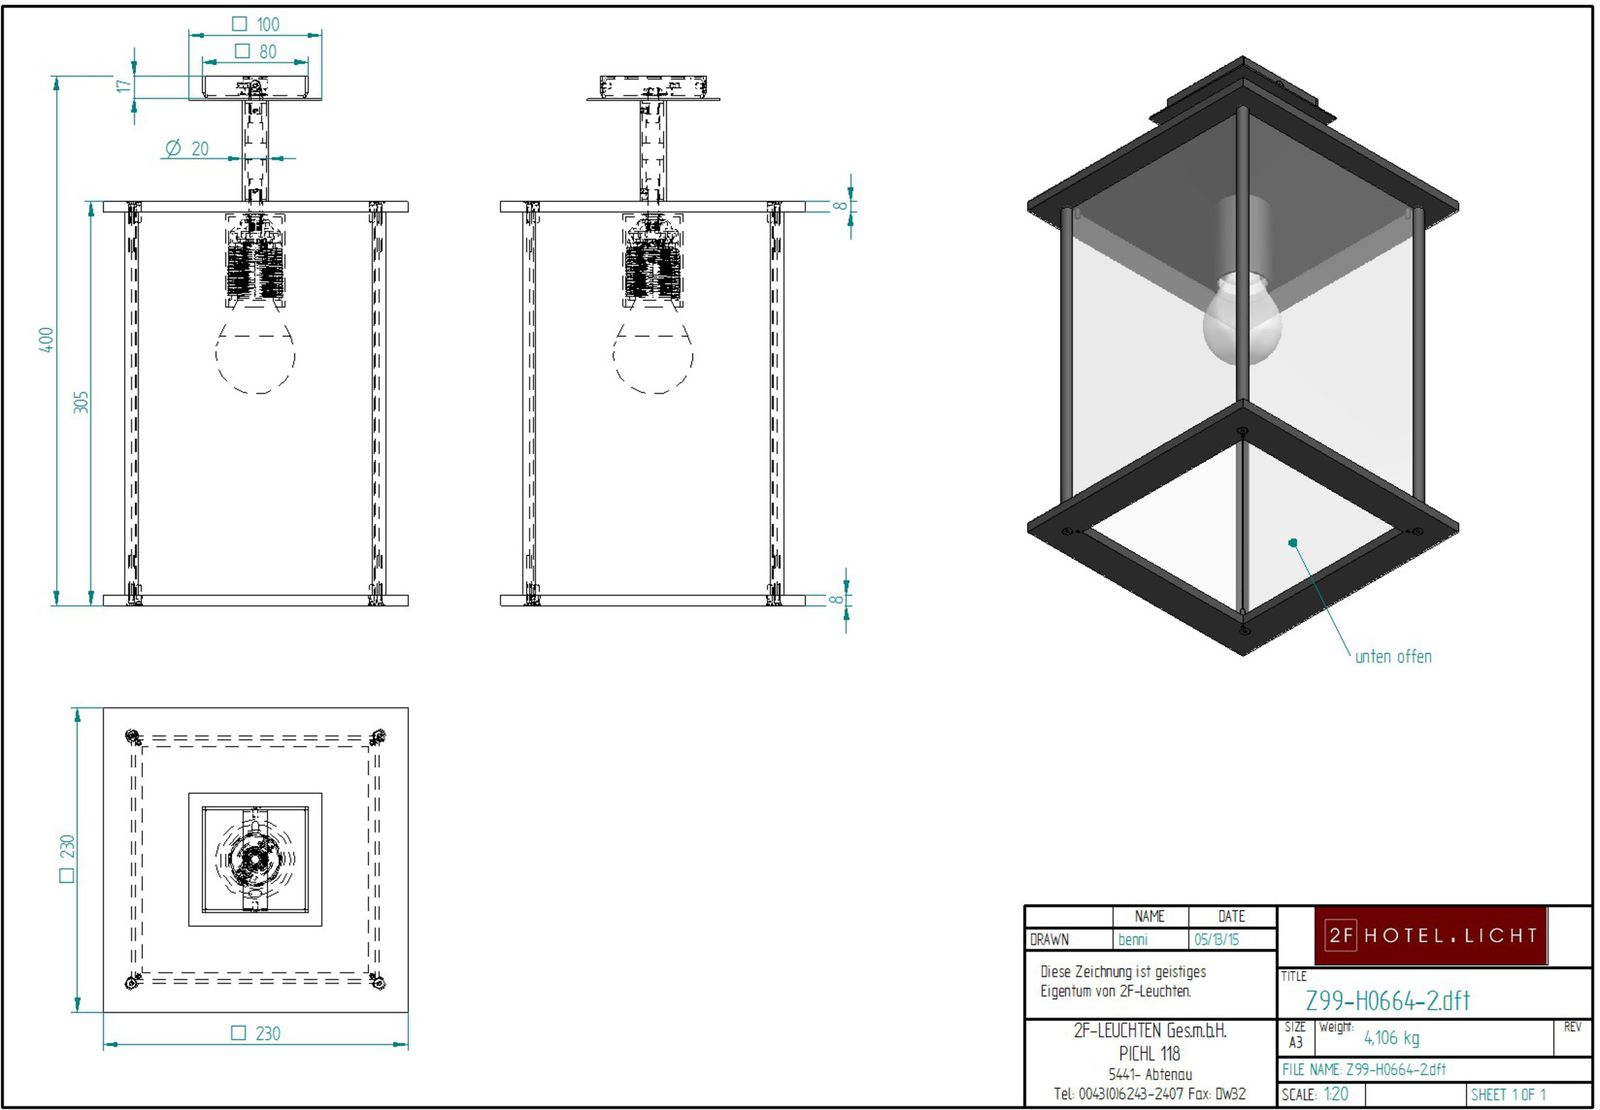 pendant, Latern with clear glass, L=230mm, W=230mm, H=400mm, surface: metal SB softblack, techn. Data: 1xE27, max. 42W / 10W LED